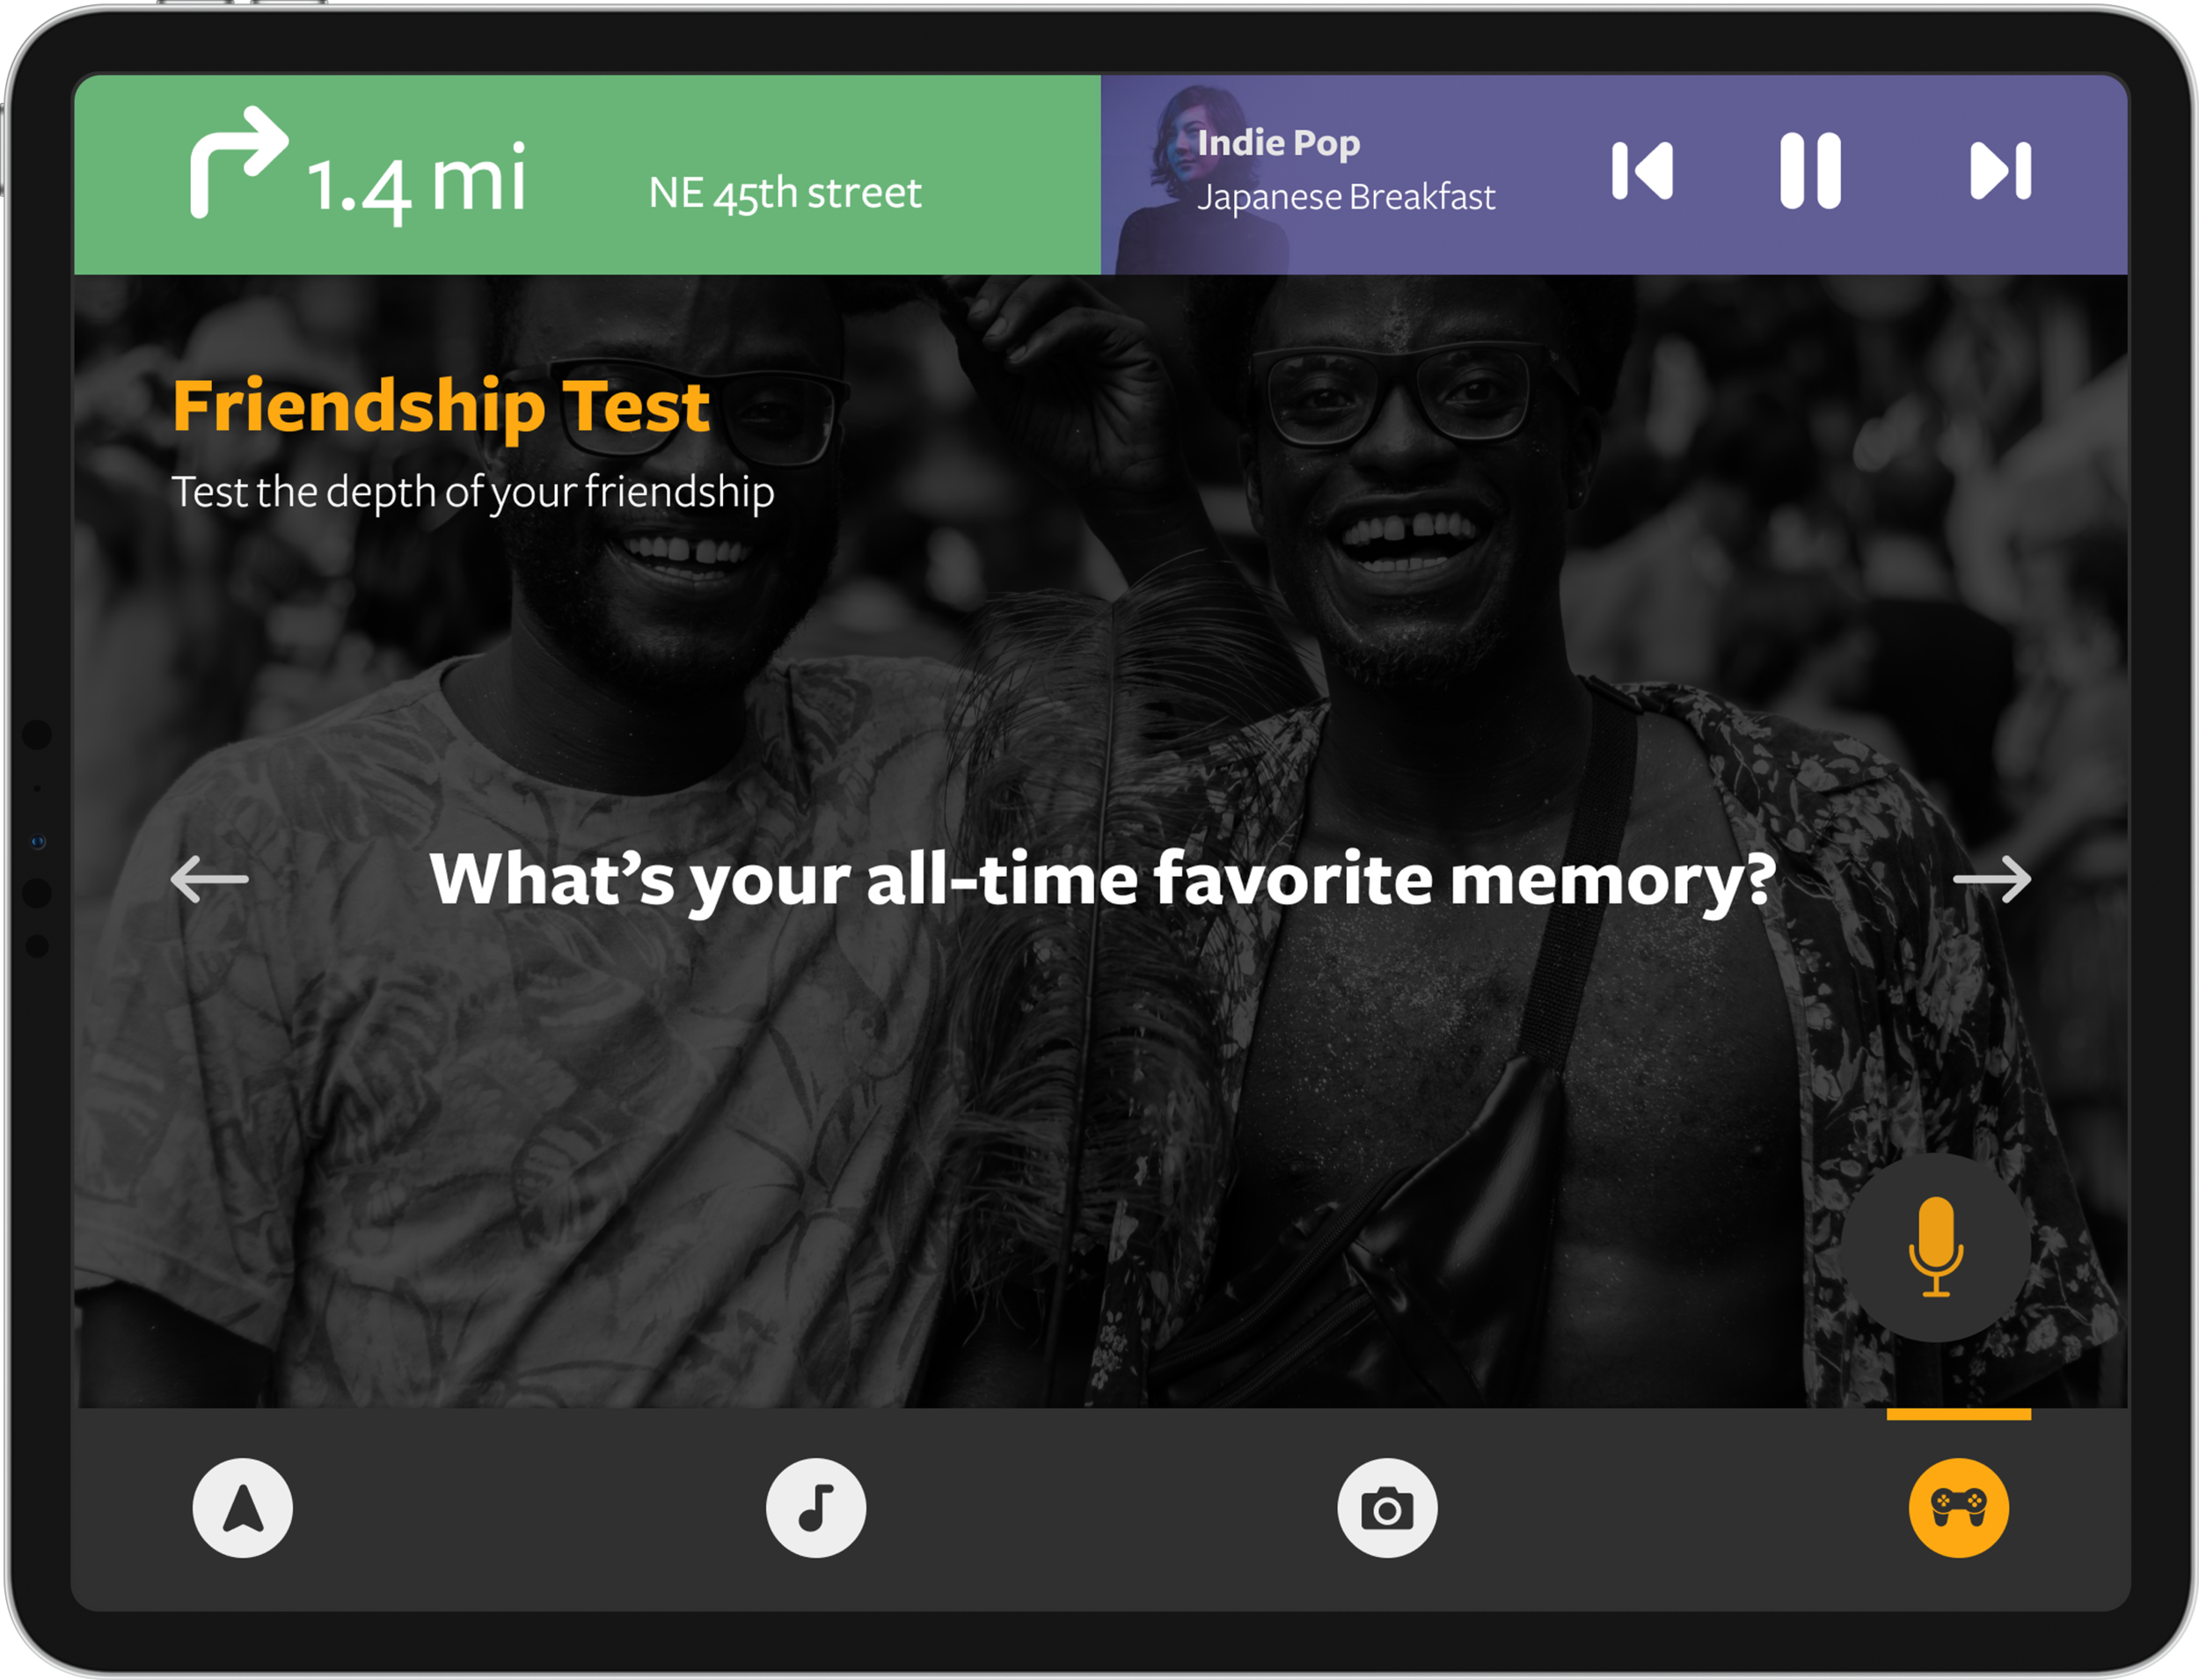 Game screen with 'friendship test' game in progress